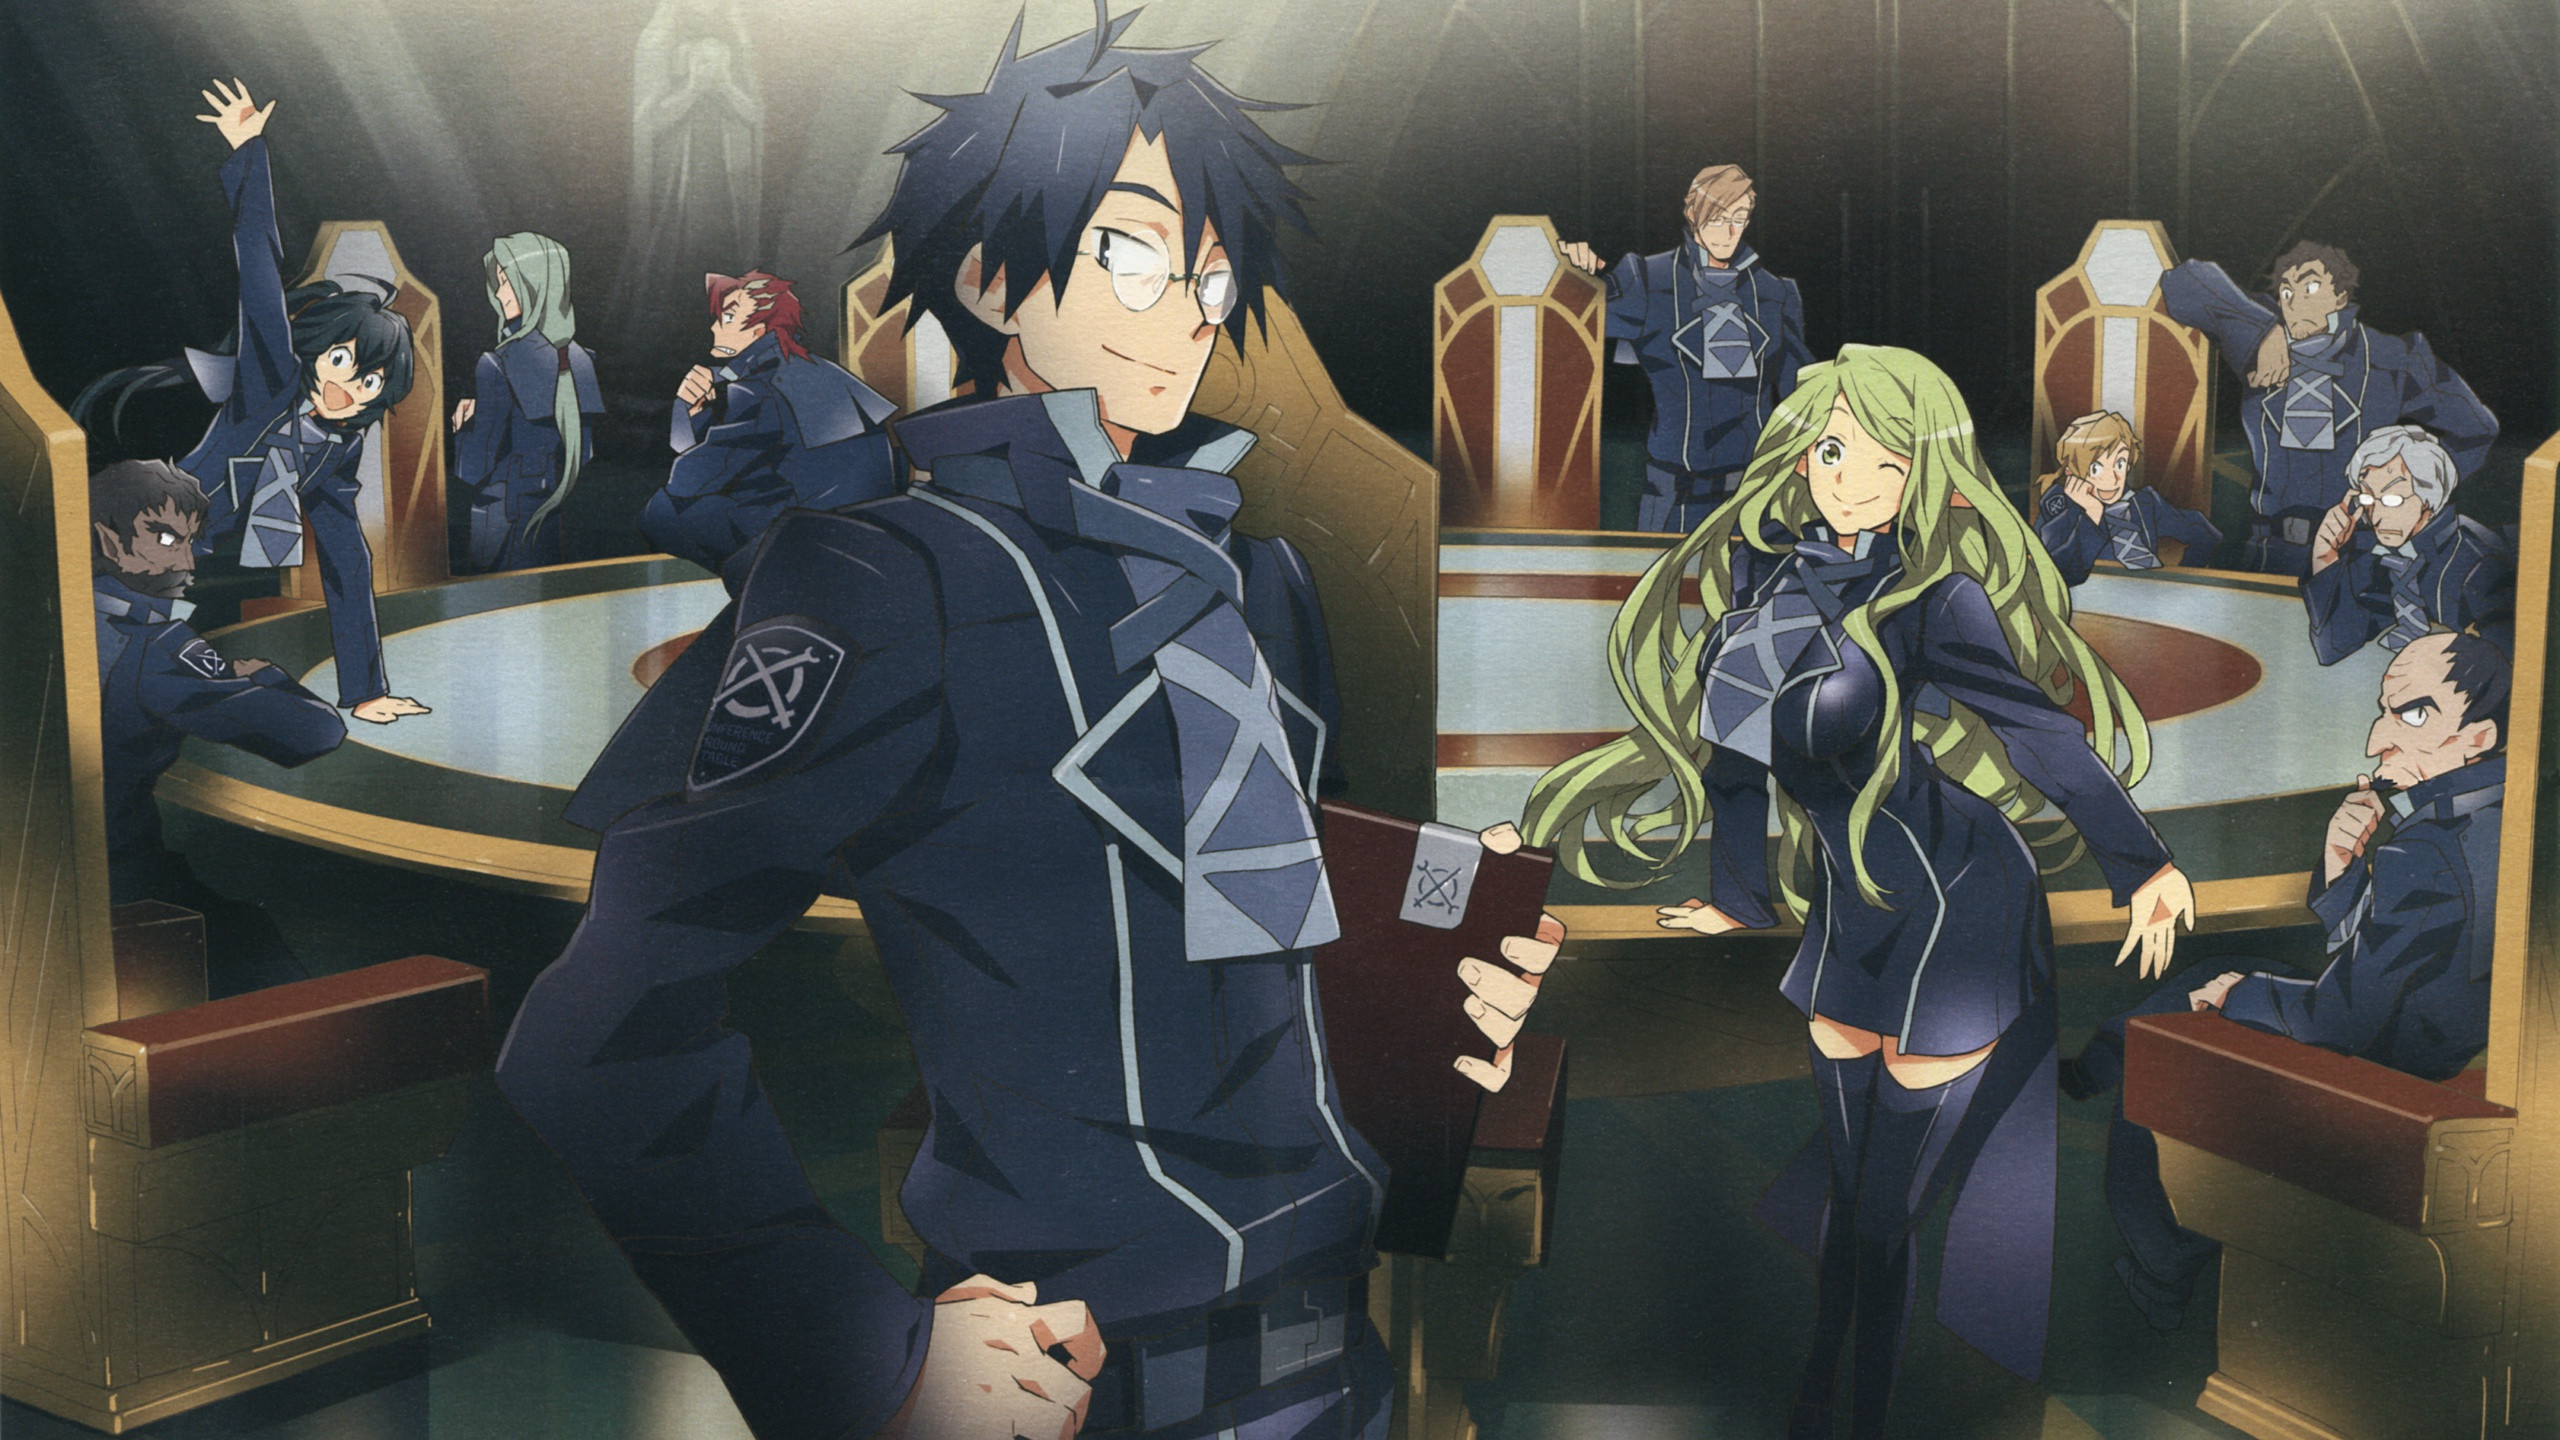 Steam Community :: Guide :: Plant Hwyaden And Log Horizon ...